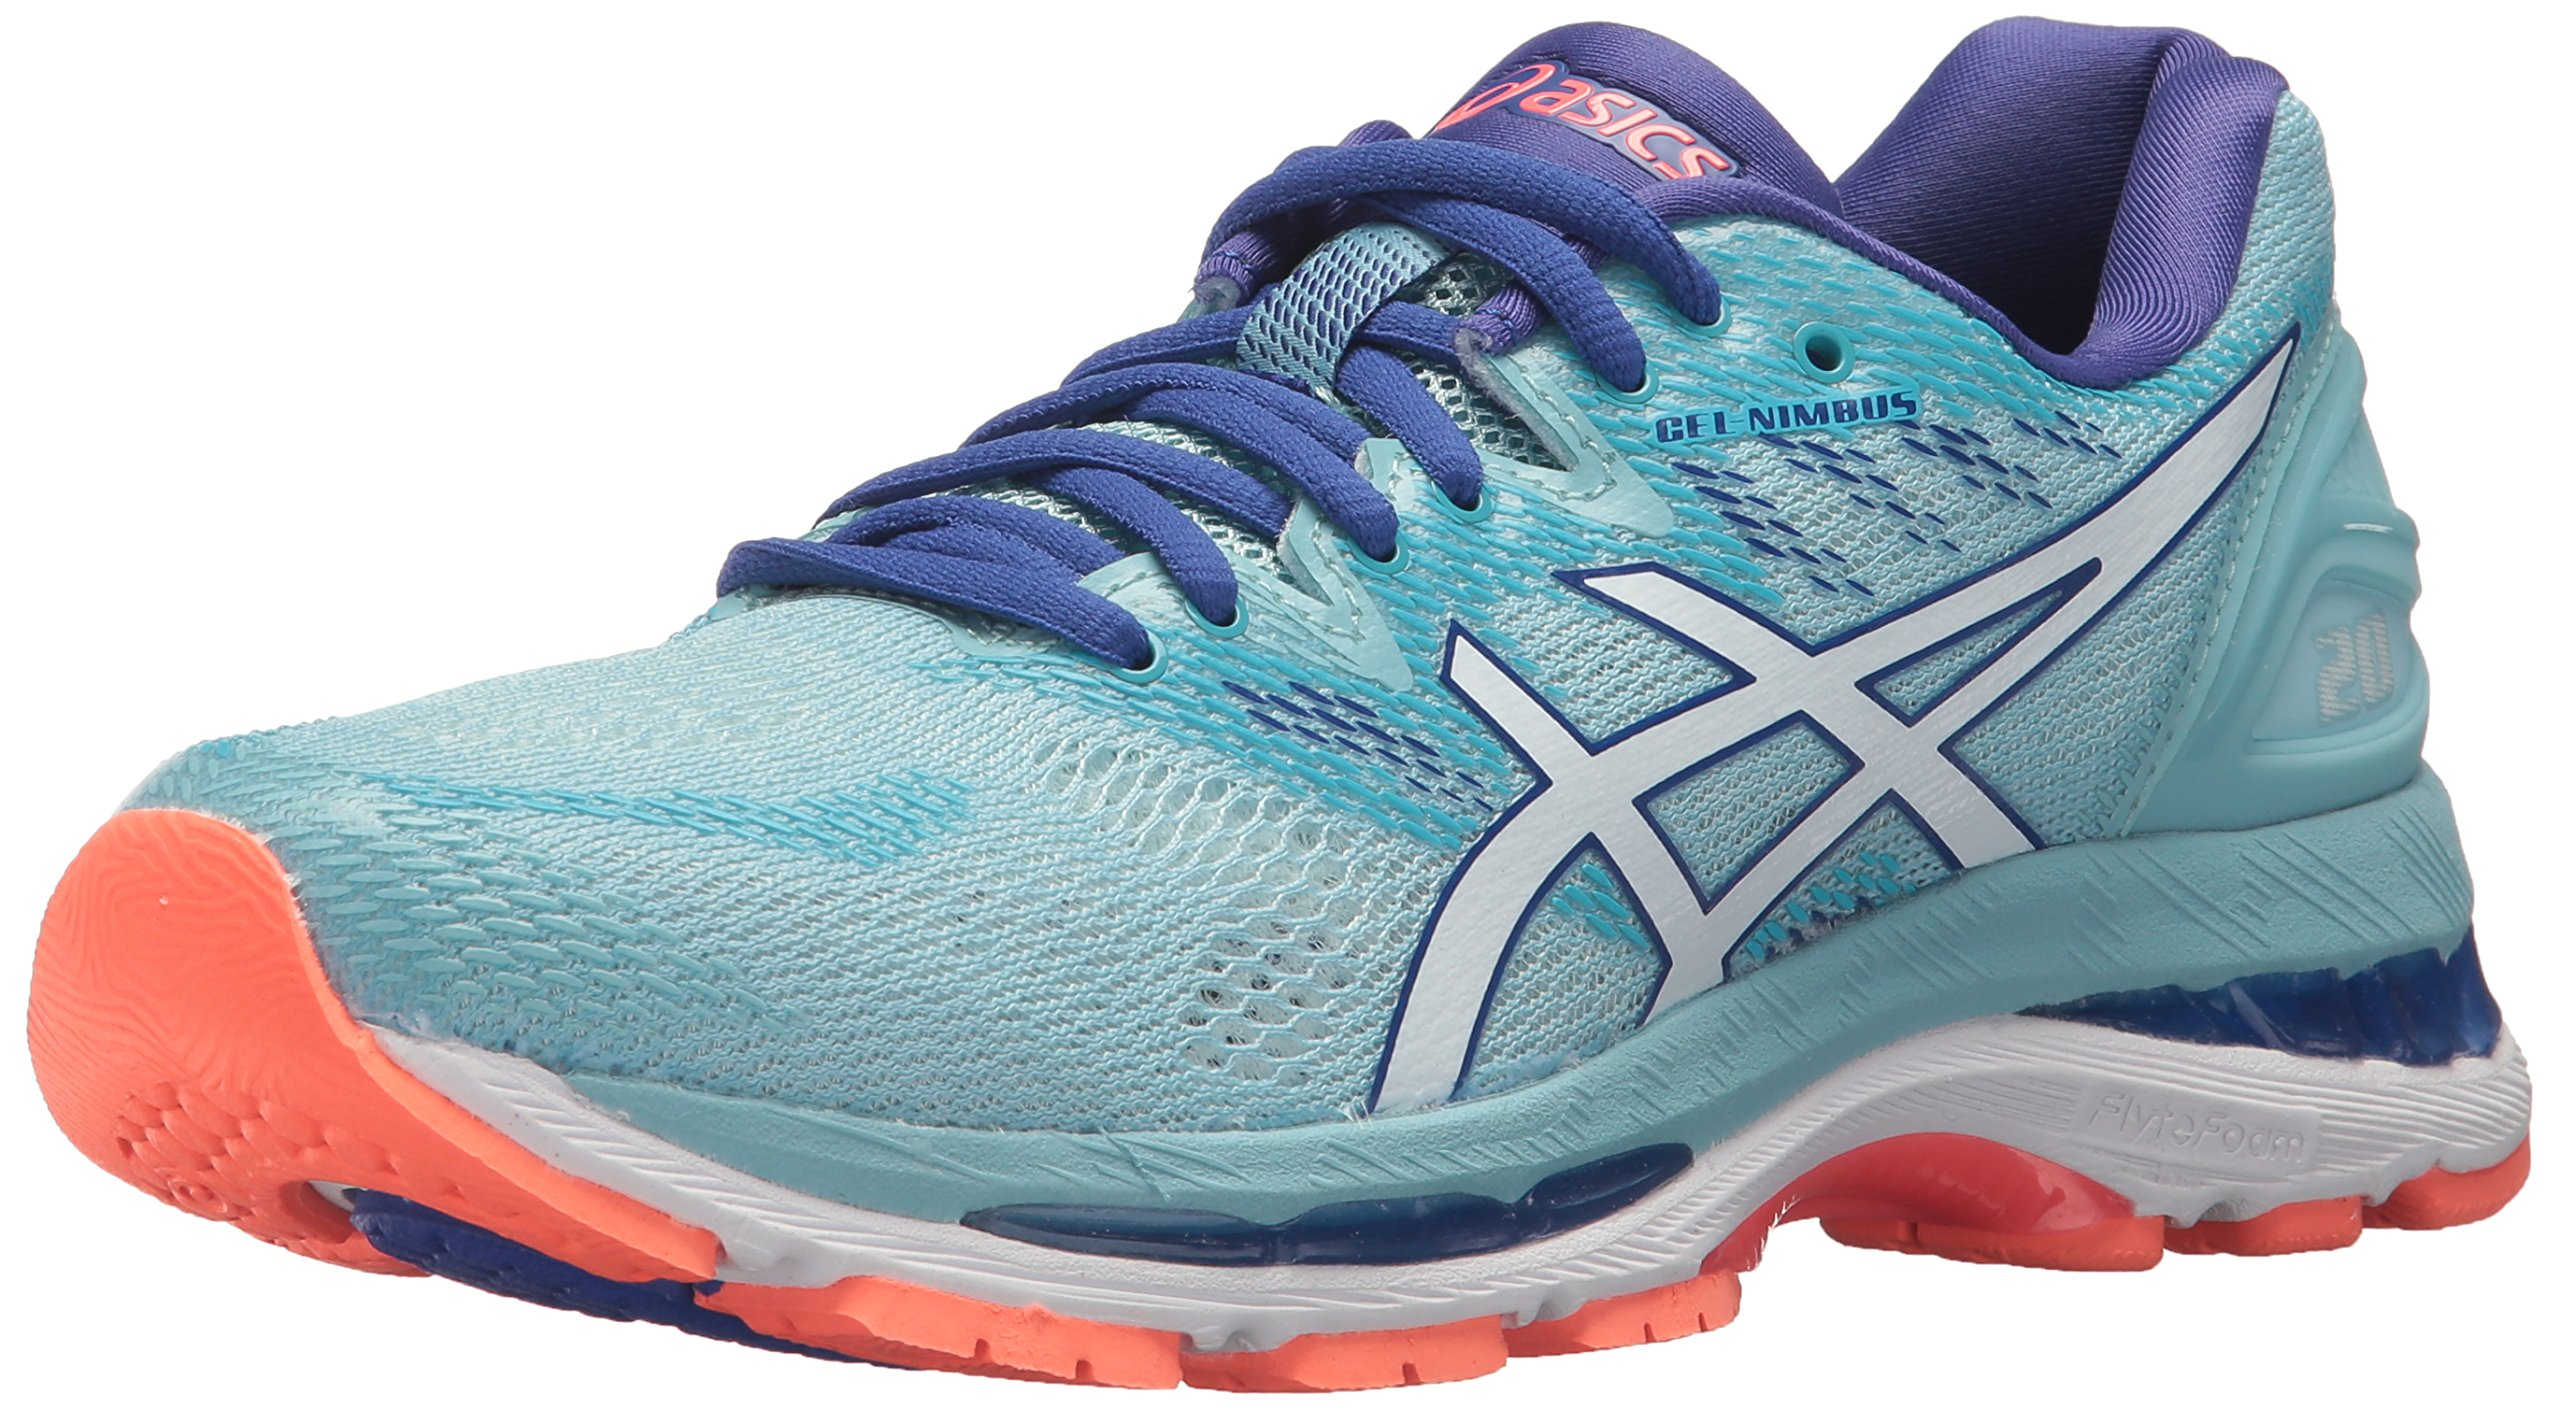 ASICS Women's Gel-Nimbus 20 Running Shoe, porcelain blue/white/asics blue, 11.5 Medium US by ASICS